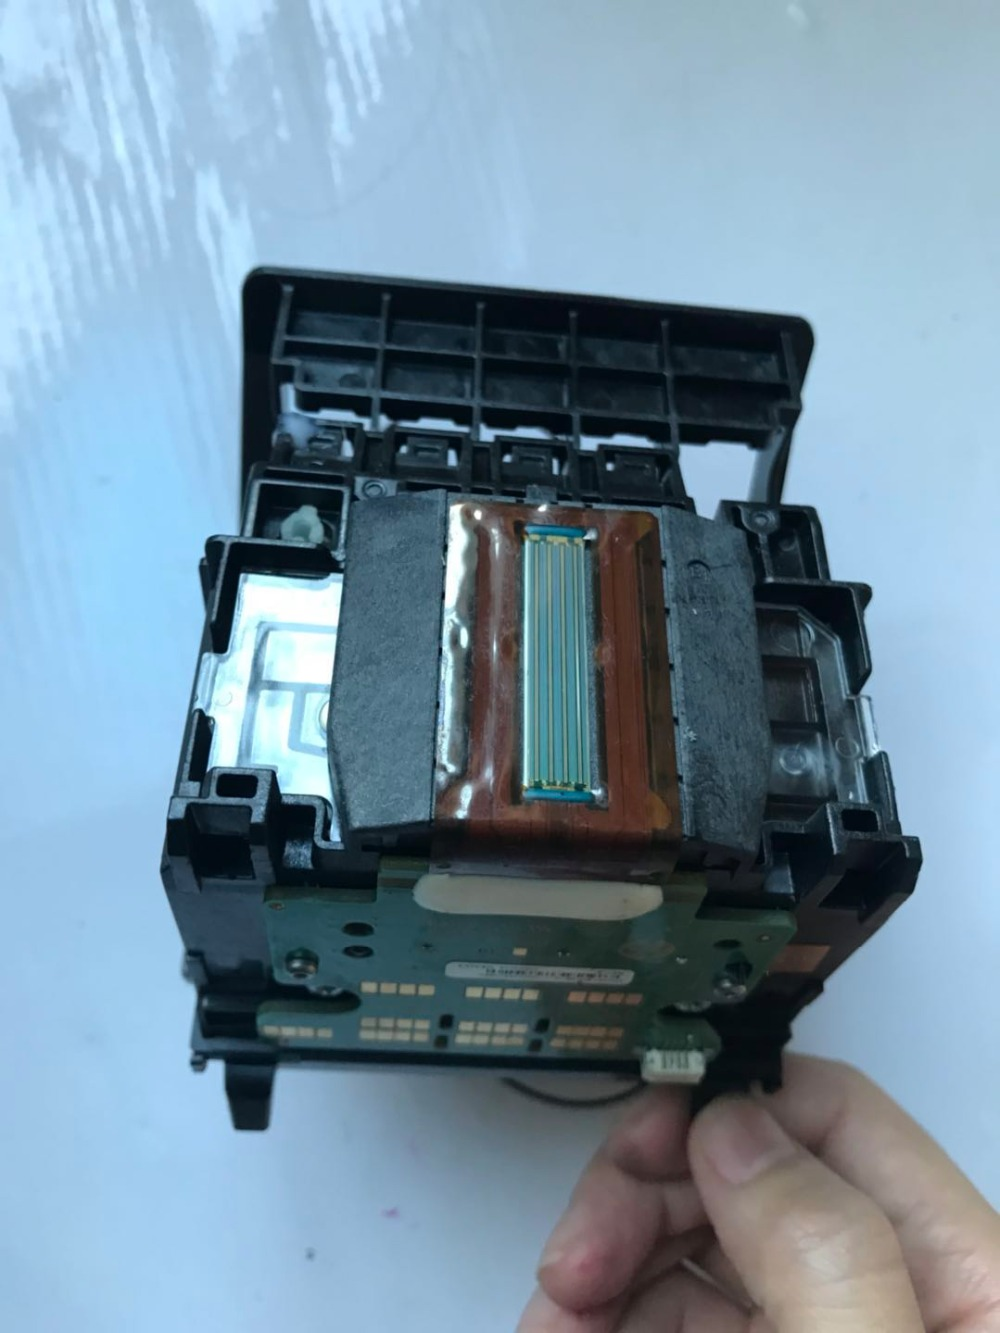 ORIGINAL CM751-80013A 950 951 950XL 951XL Printhead Print head for HP Pro 8100 8600 8610 8620 8625 8630 8700 251DW 251 276 276DW test well 950 951 95%new original printhead print head for hp 8600 8100 8620 8630 8640 8660 251dw 276 printer head for hp 950